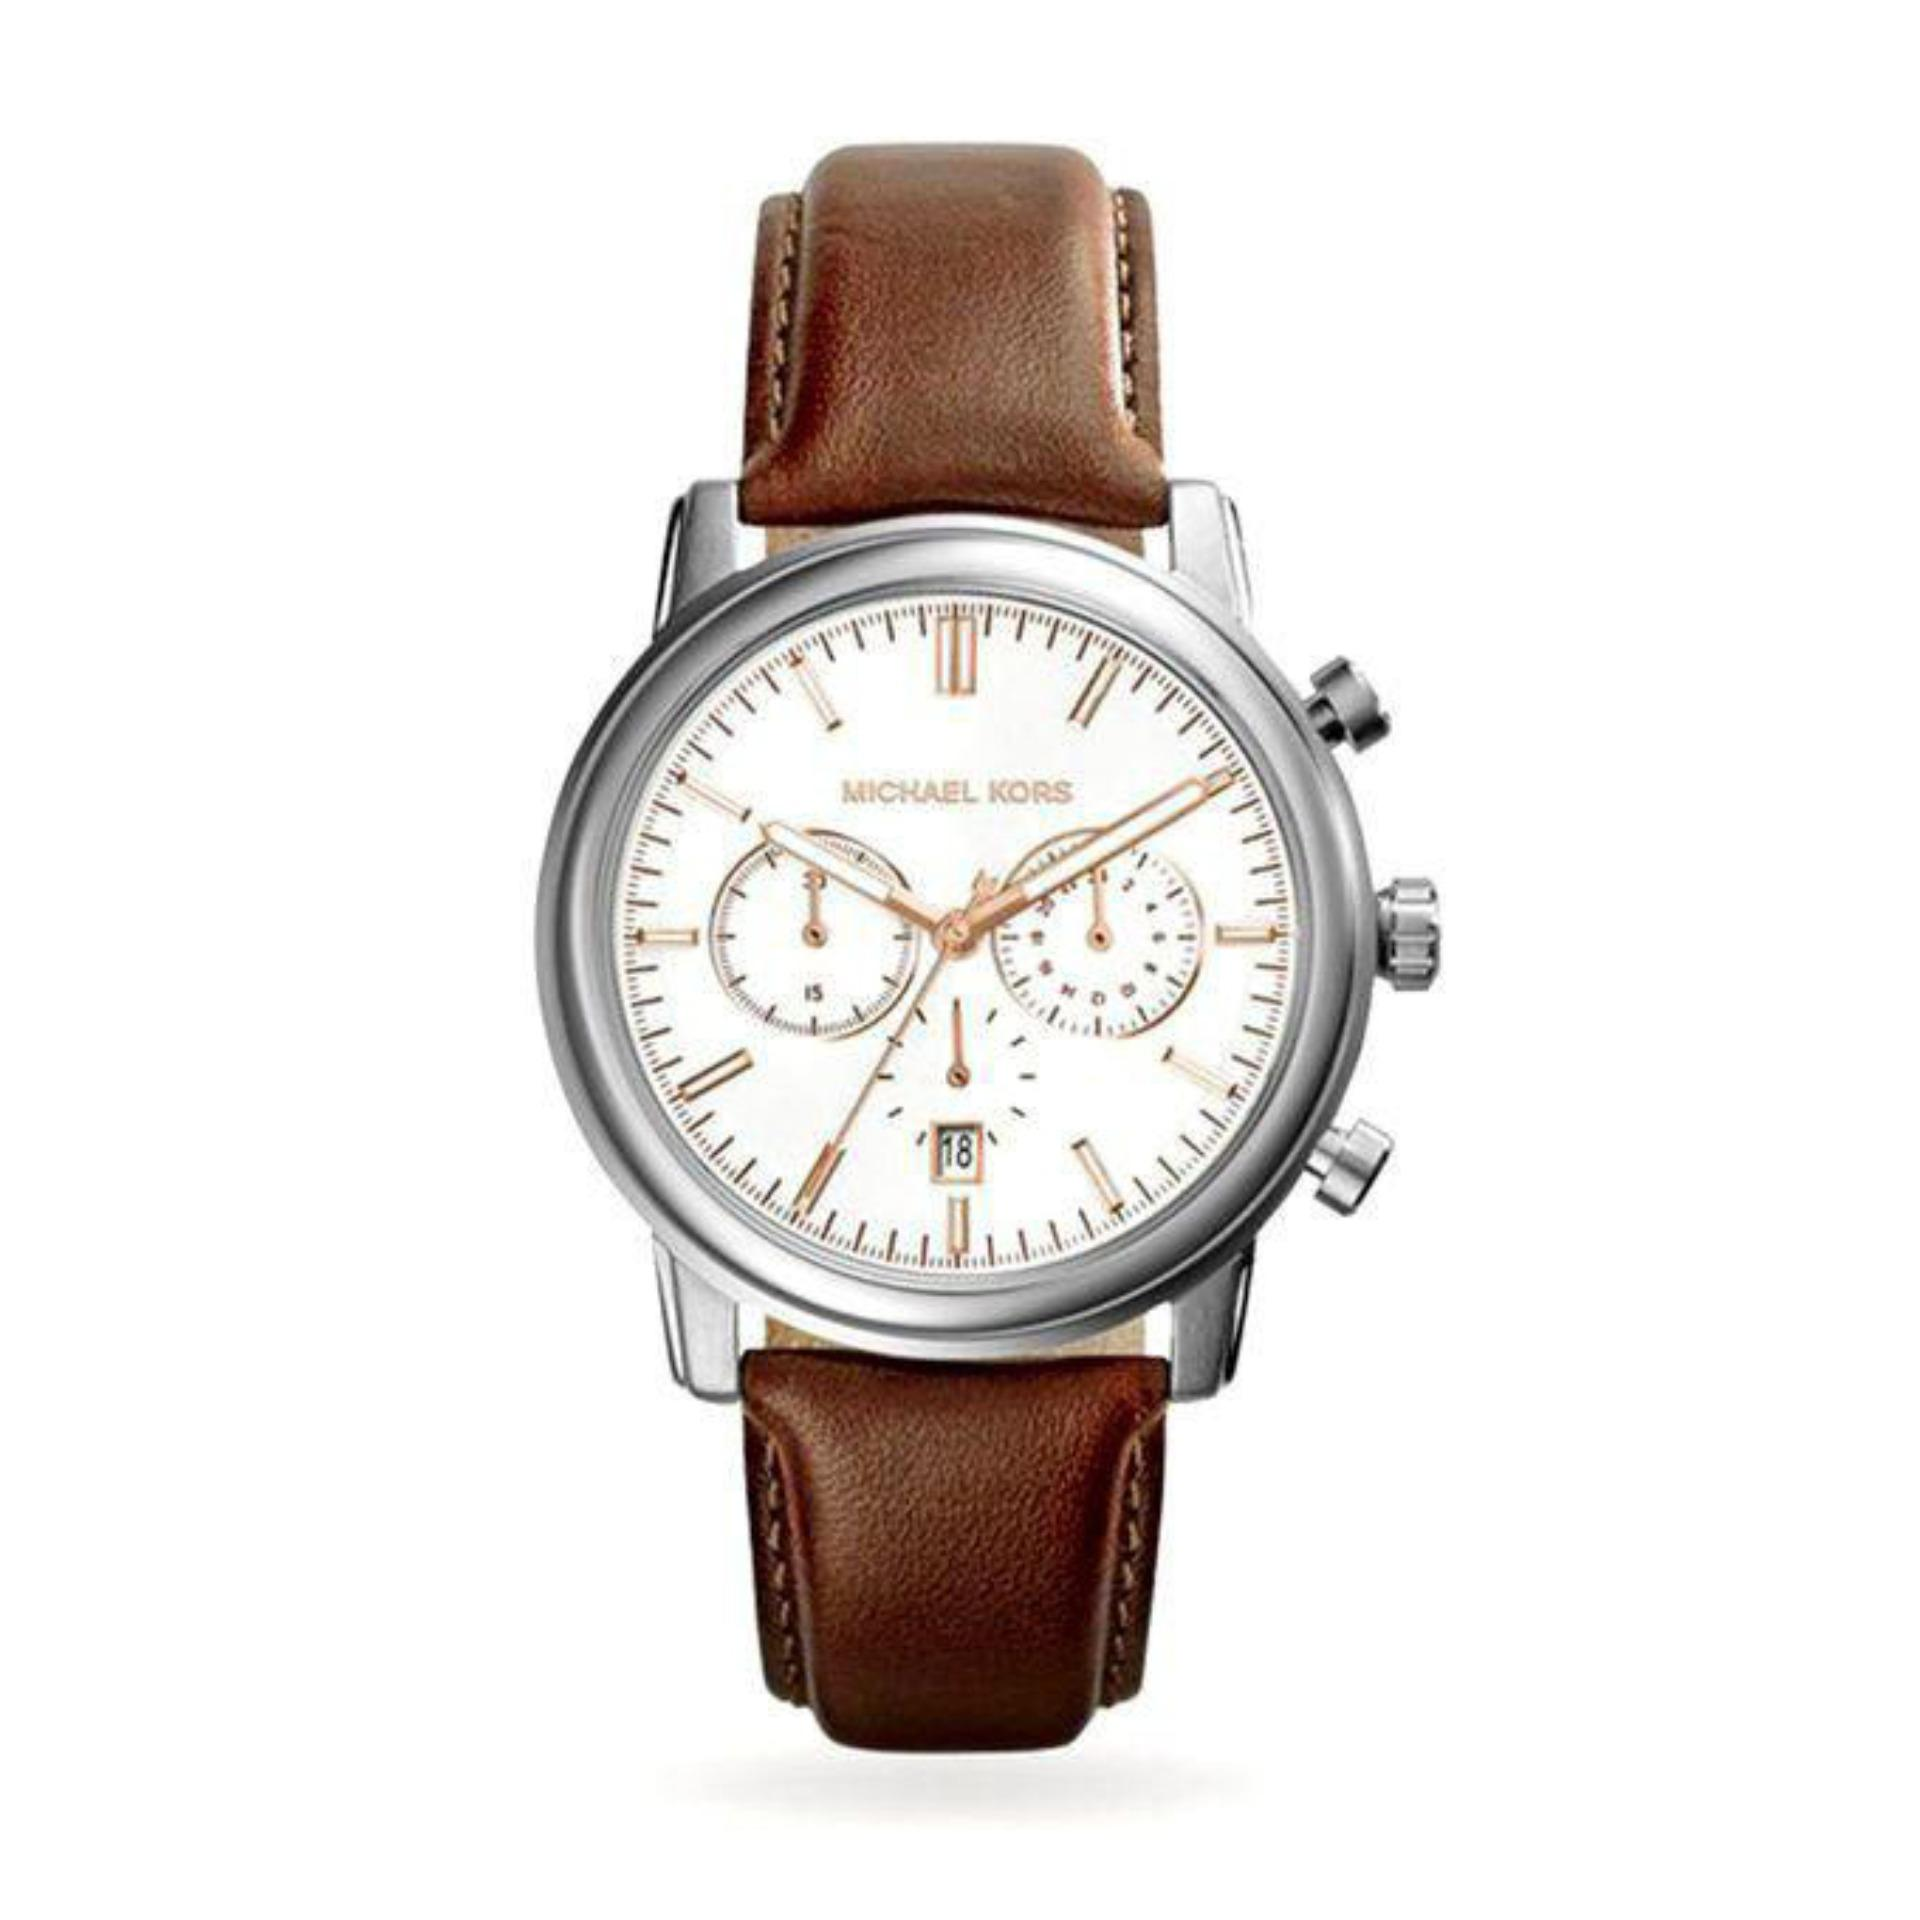 Genuine Leather MK8372 Pennant Chronograph Watch for Men - Brown